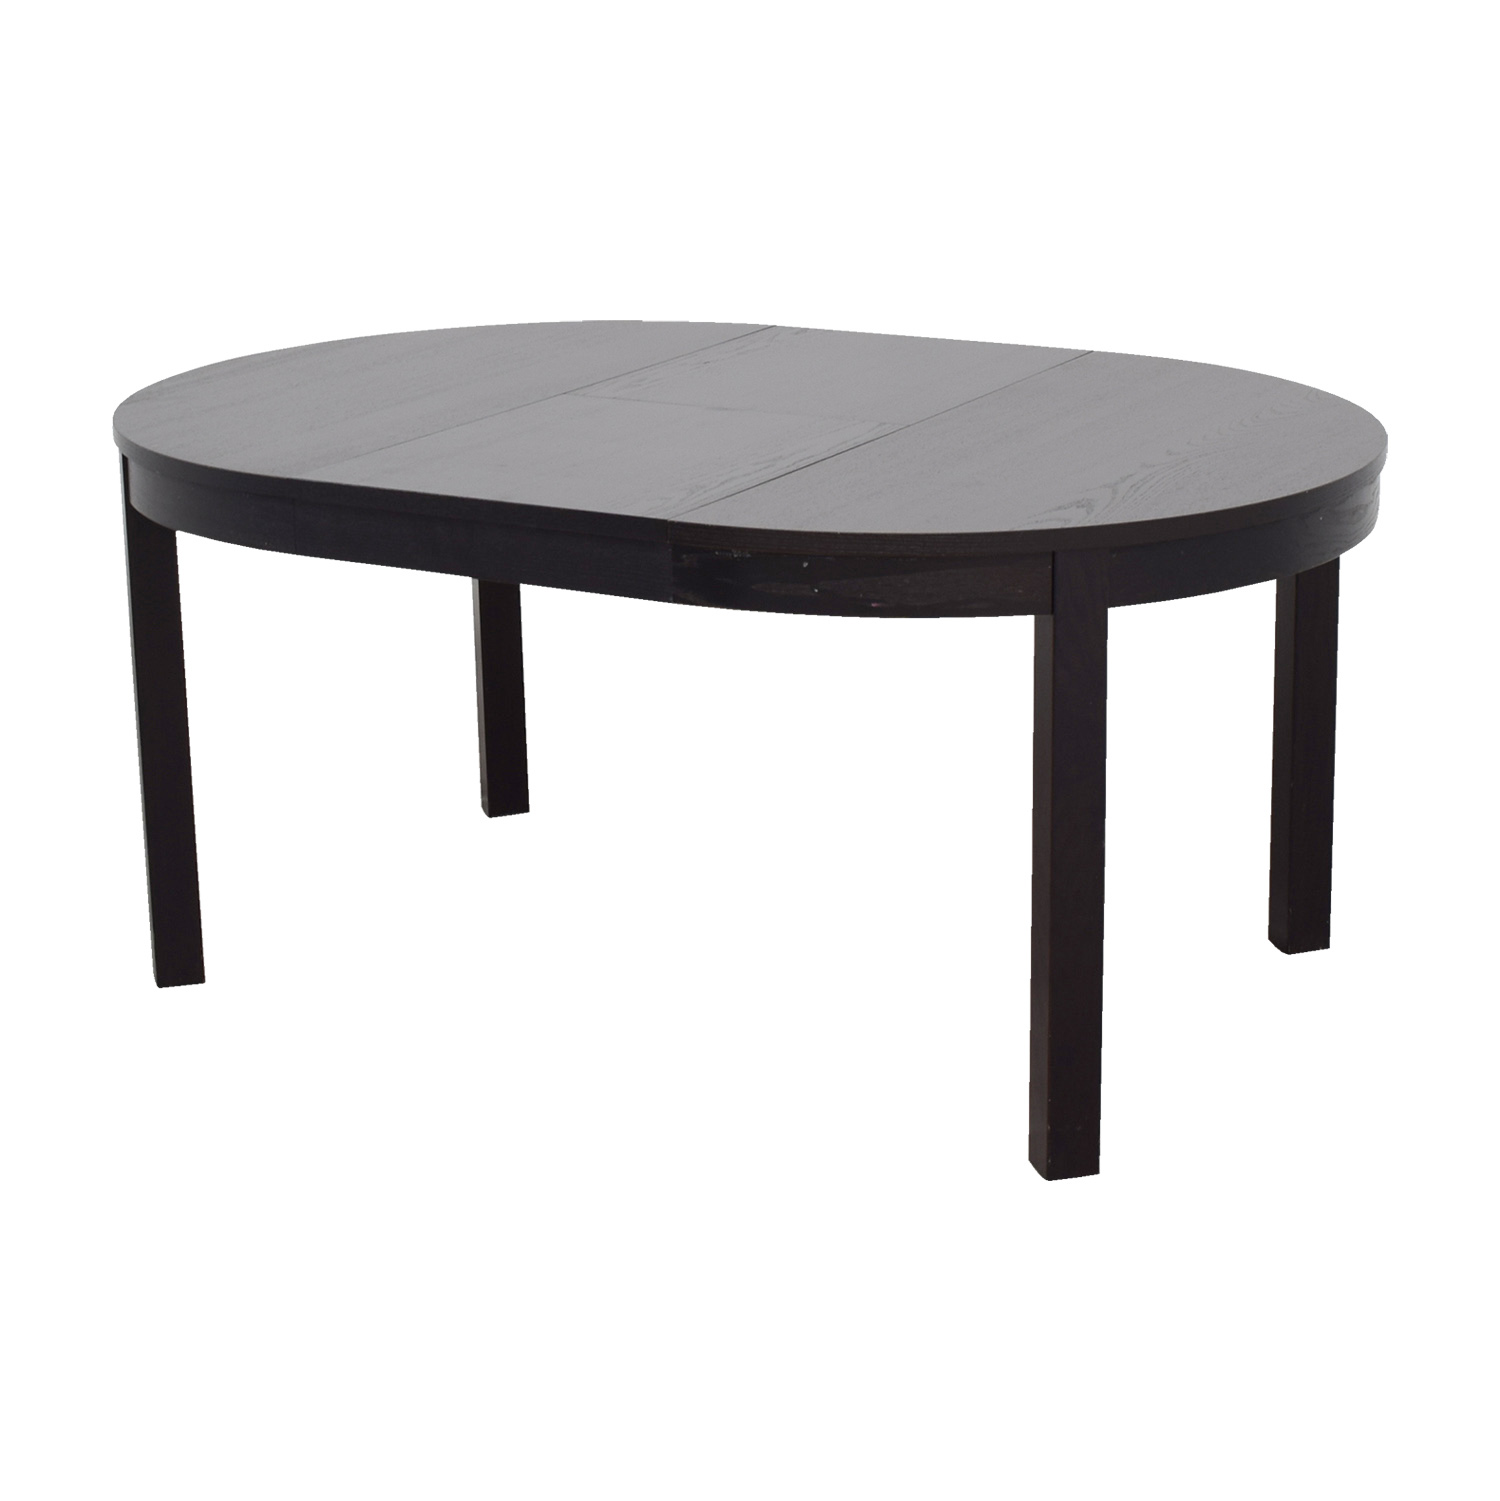 Ikea Bjursta Extendable Round To Oval Dining Table Dinner Tables